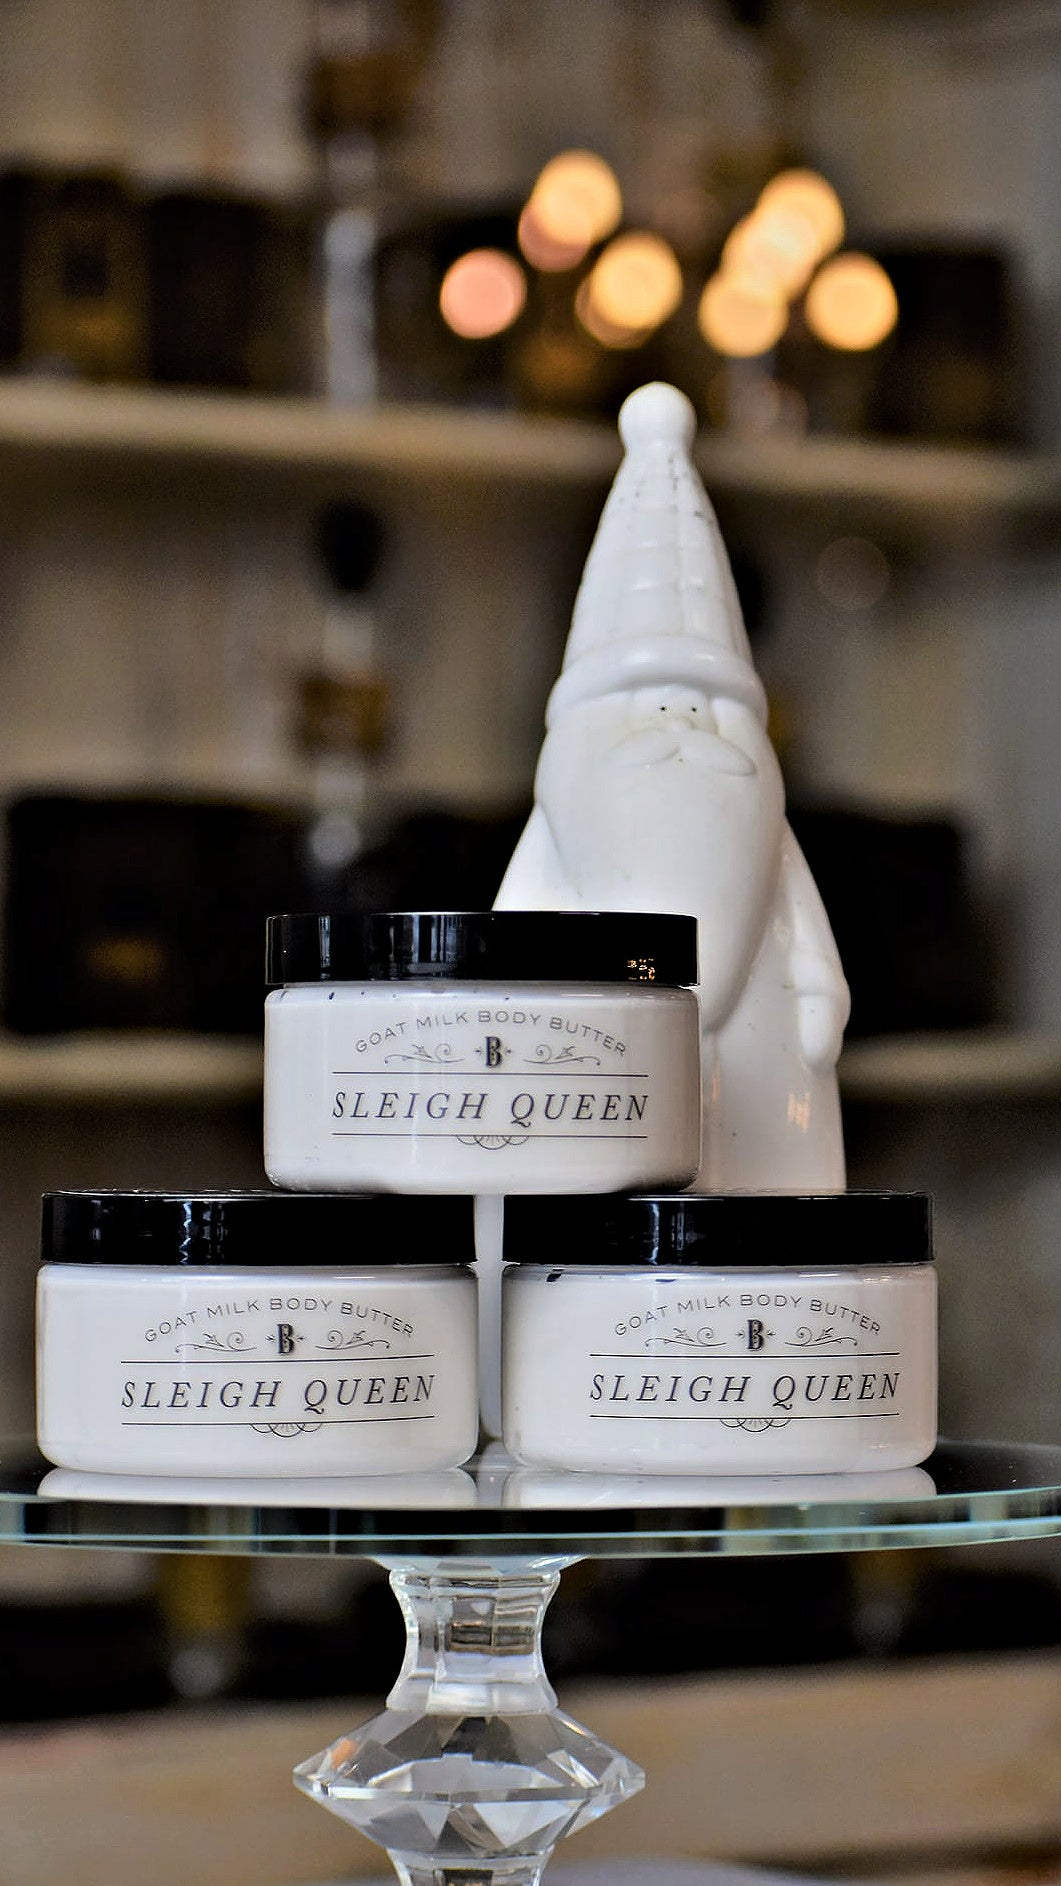 Sleigh Queen Body Butter